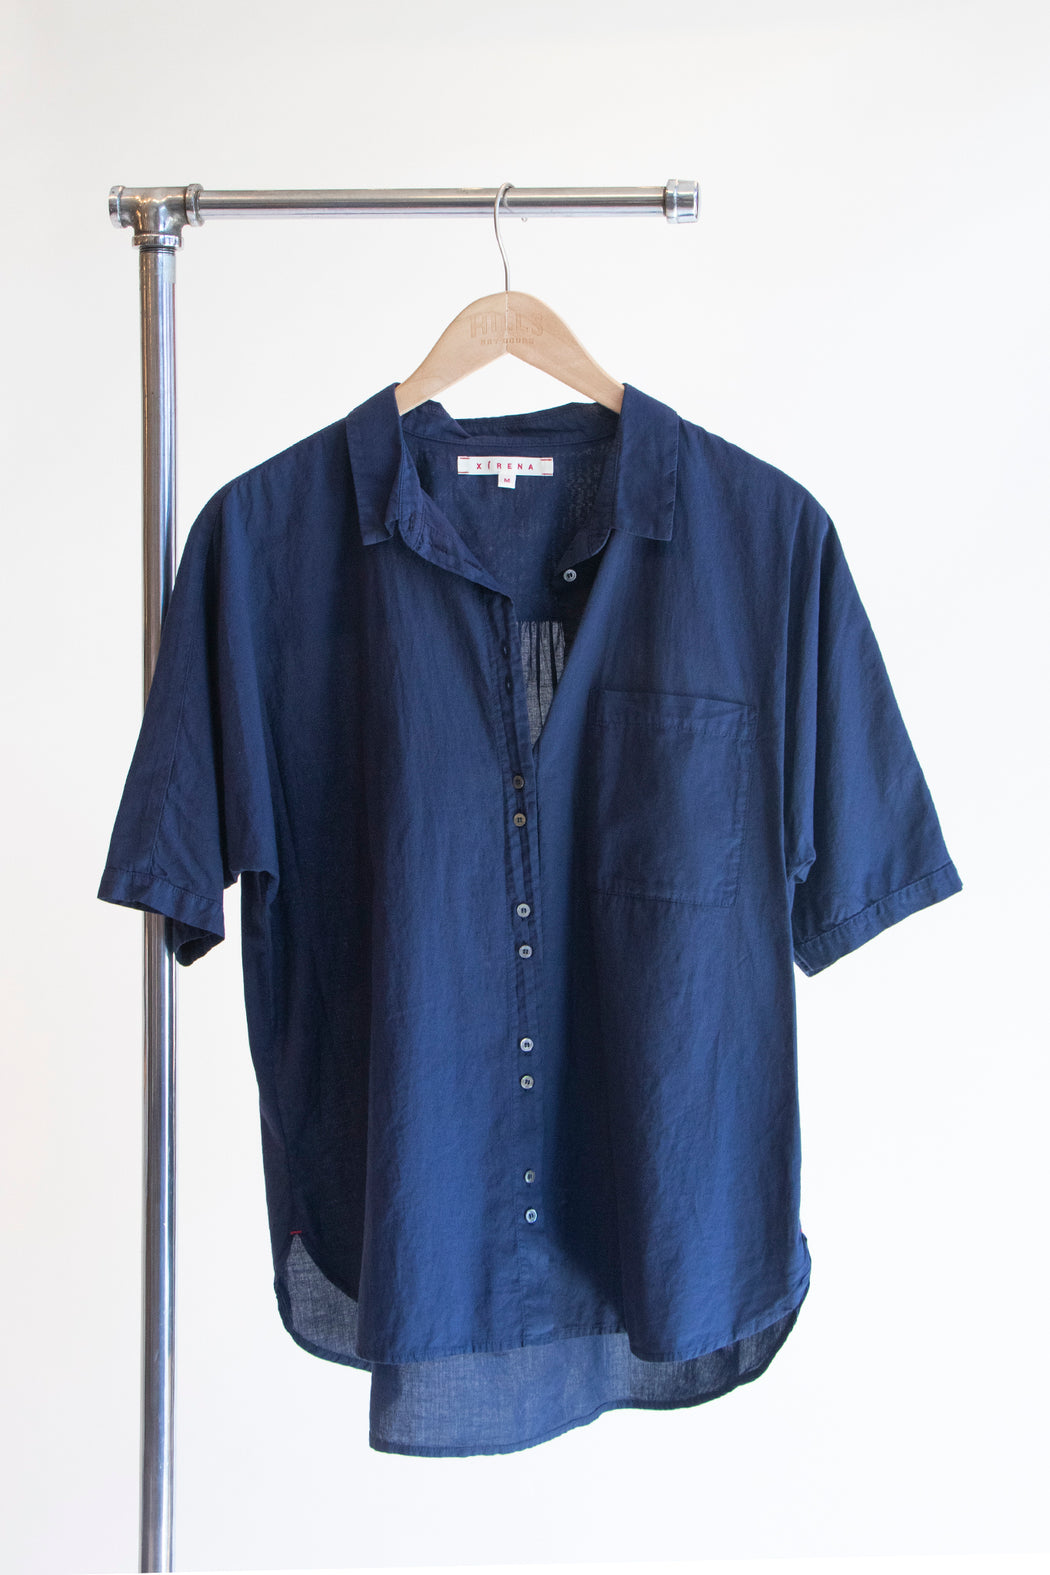 Xirena Jaylen Shirt in Marina Blue